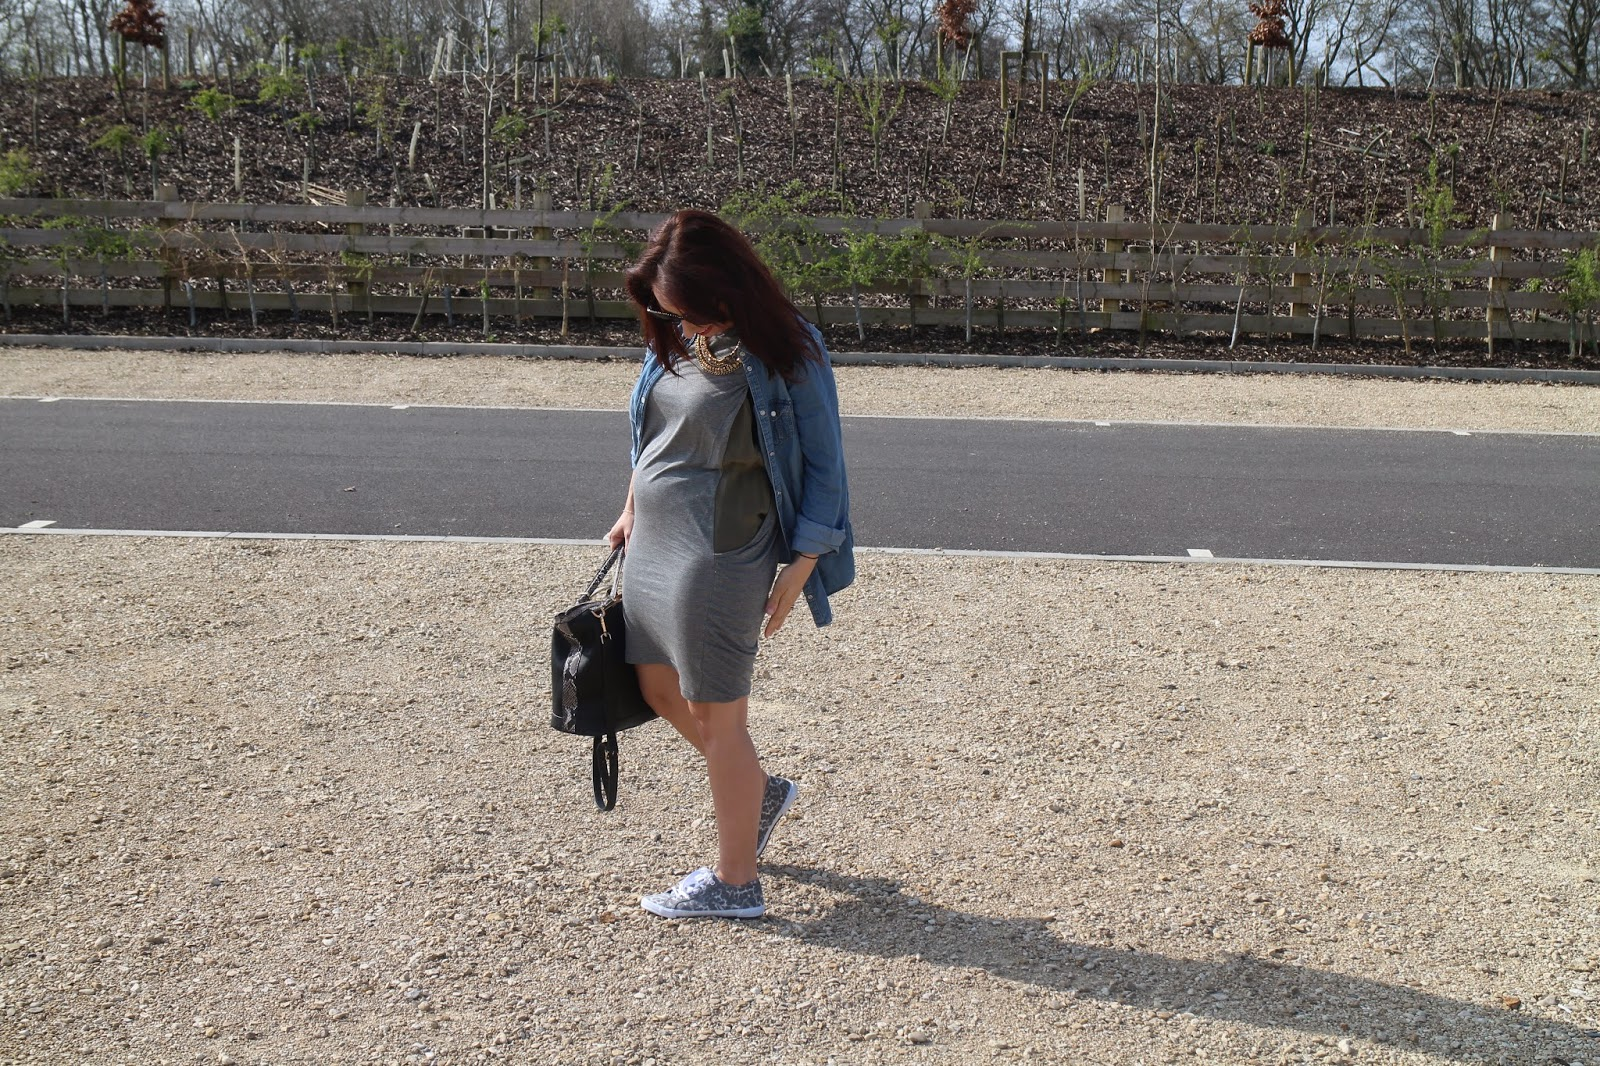 Maternity wear, Maternity street style, street style, fashion, all saints, fbloggers, casual ootd, outfit inspiration, topshop, what to wear when pregnant, fashion style